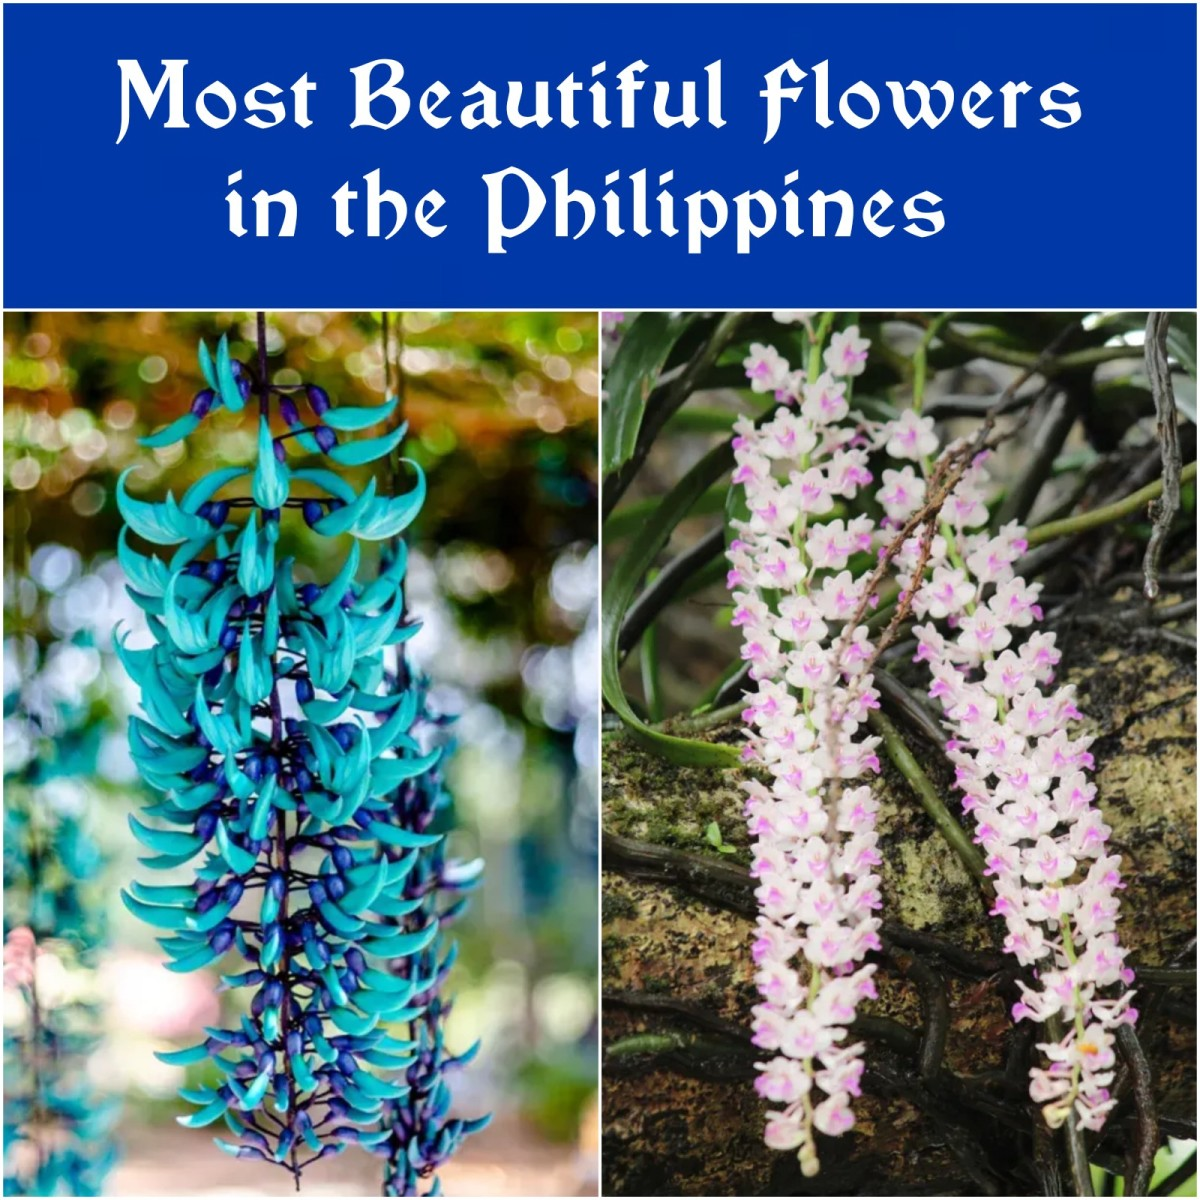 Here are 10 of the most beautiful flowers in the world!